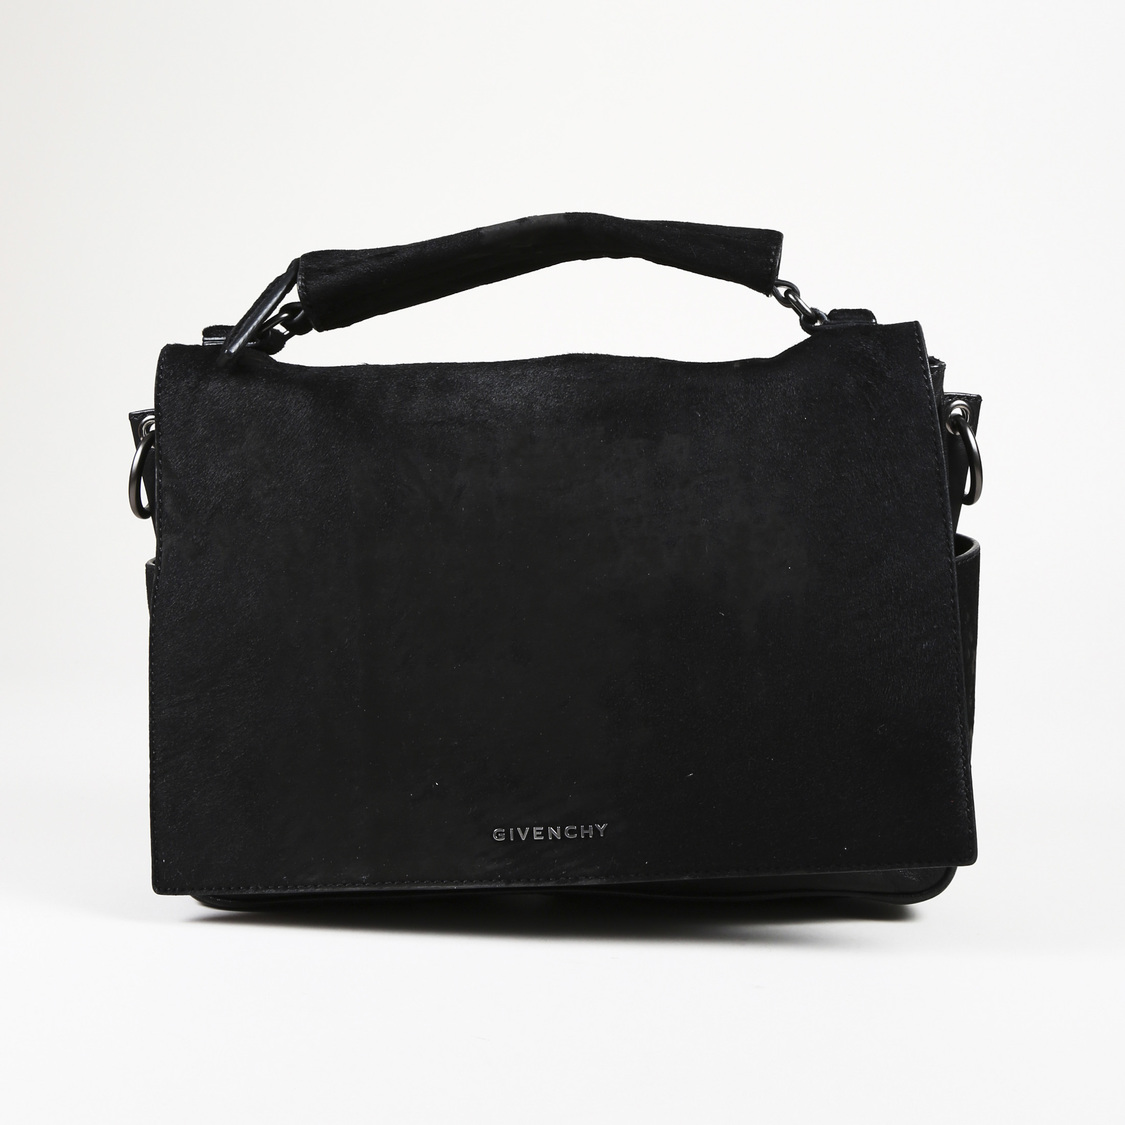 8eabc60535 Details about Givenchy Black Pony Hair   Leather Messenger Bag